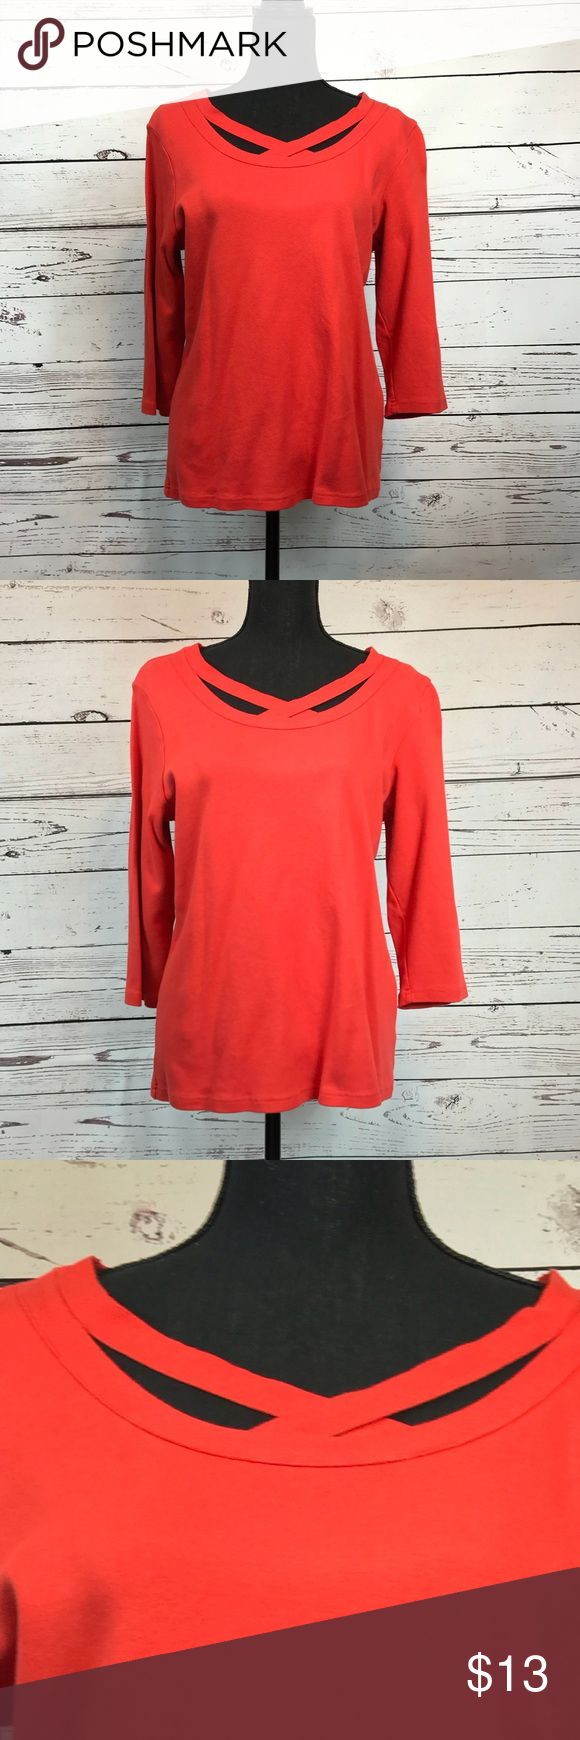 Liz Claiborne New York 3/4 Sleeve Red Top Size L Classy red Liz Claiborne 3/4 sleeve red top that can be worn with just about anything. I love the detailing around the neckline that changes this from an ordinary top to an extraordinary top. Made with very soft 100% cotton. Perfect for all seasons! Liz Claiborne Tops Tees - Long Sleeve